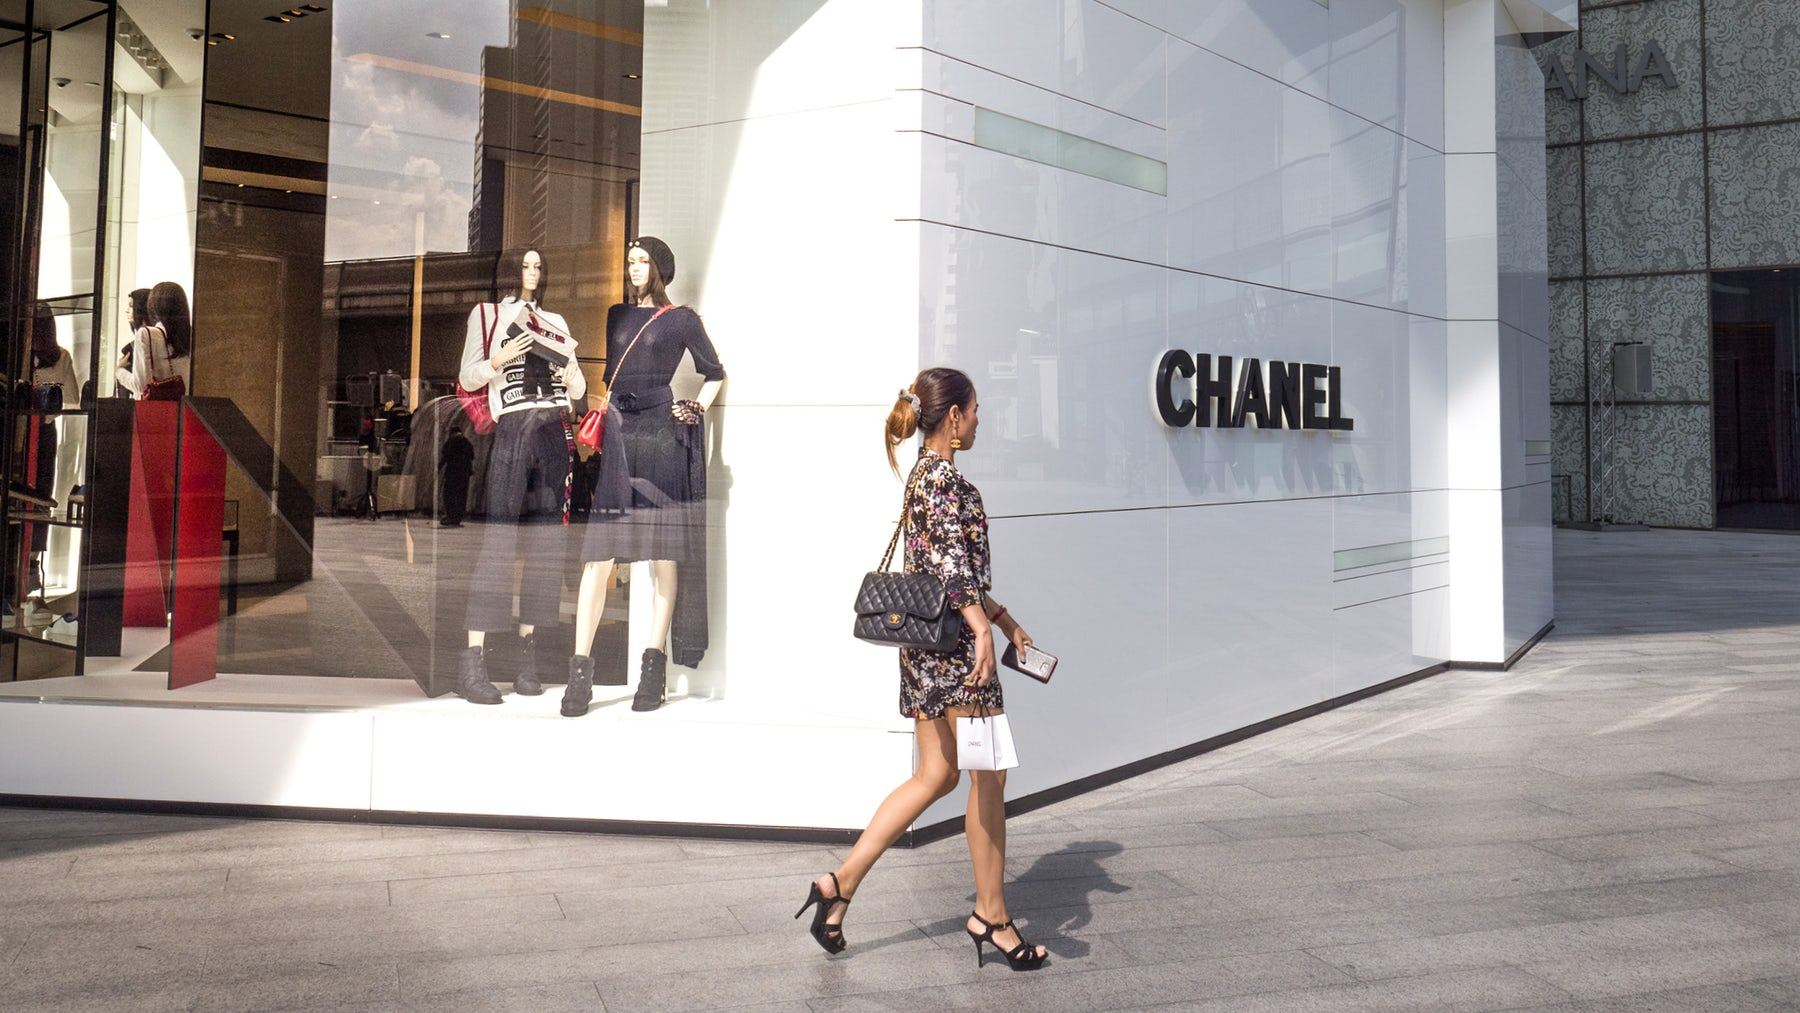 South Korea shoppers line up before dawn ahead of expected Chanel price hike